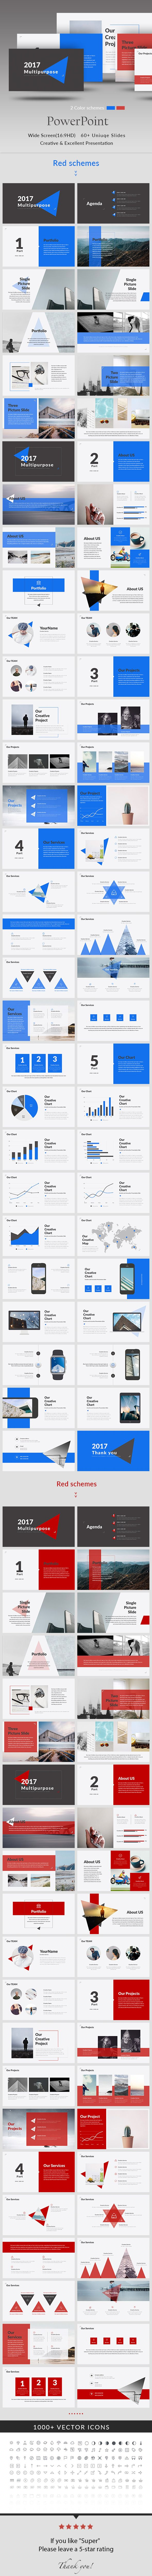 BR - PowerPoint Presentation Template - Creative PowerPoint Templates